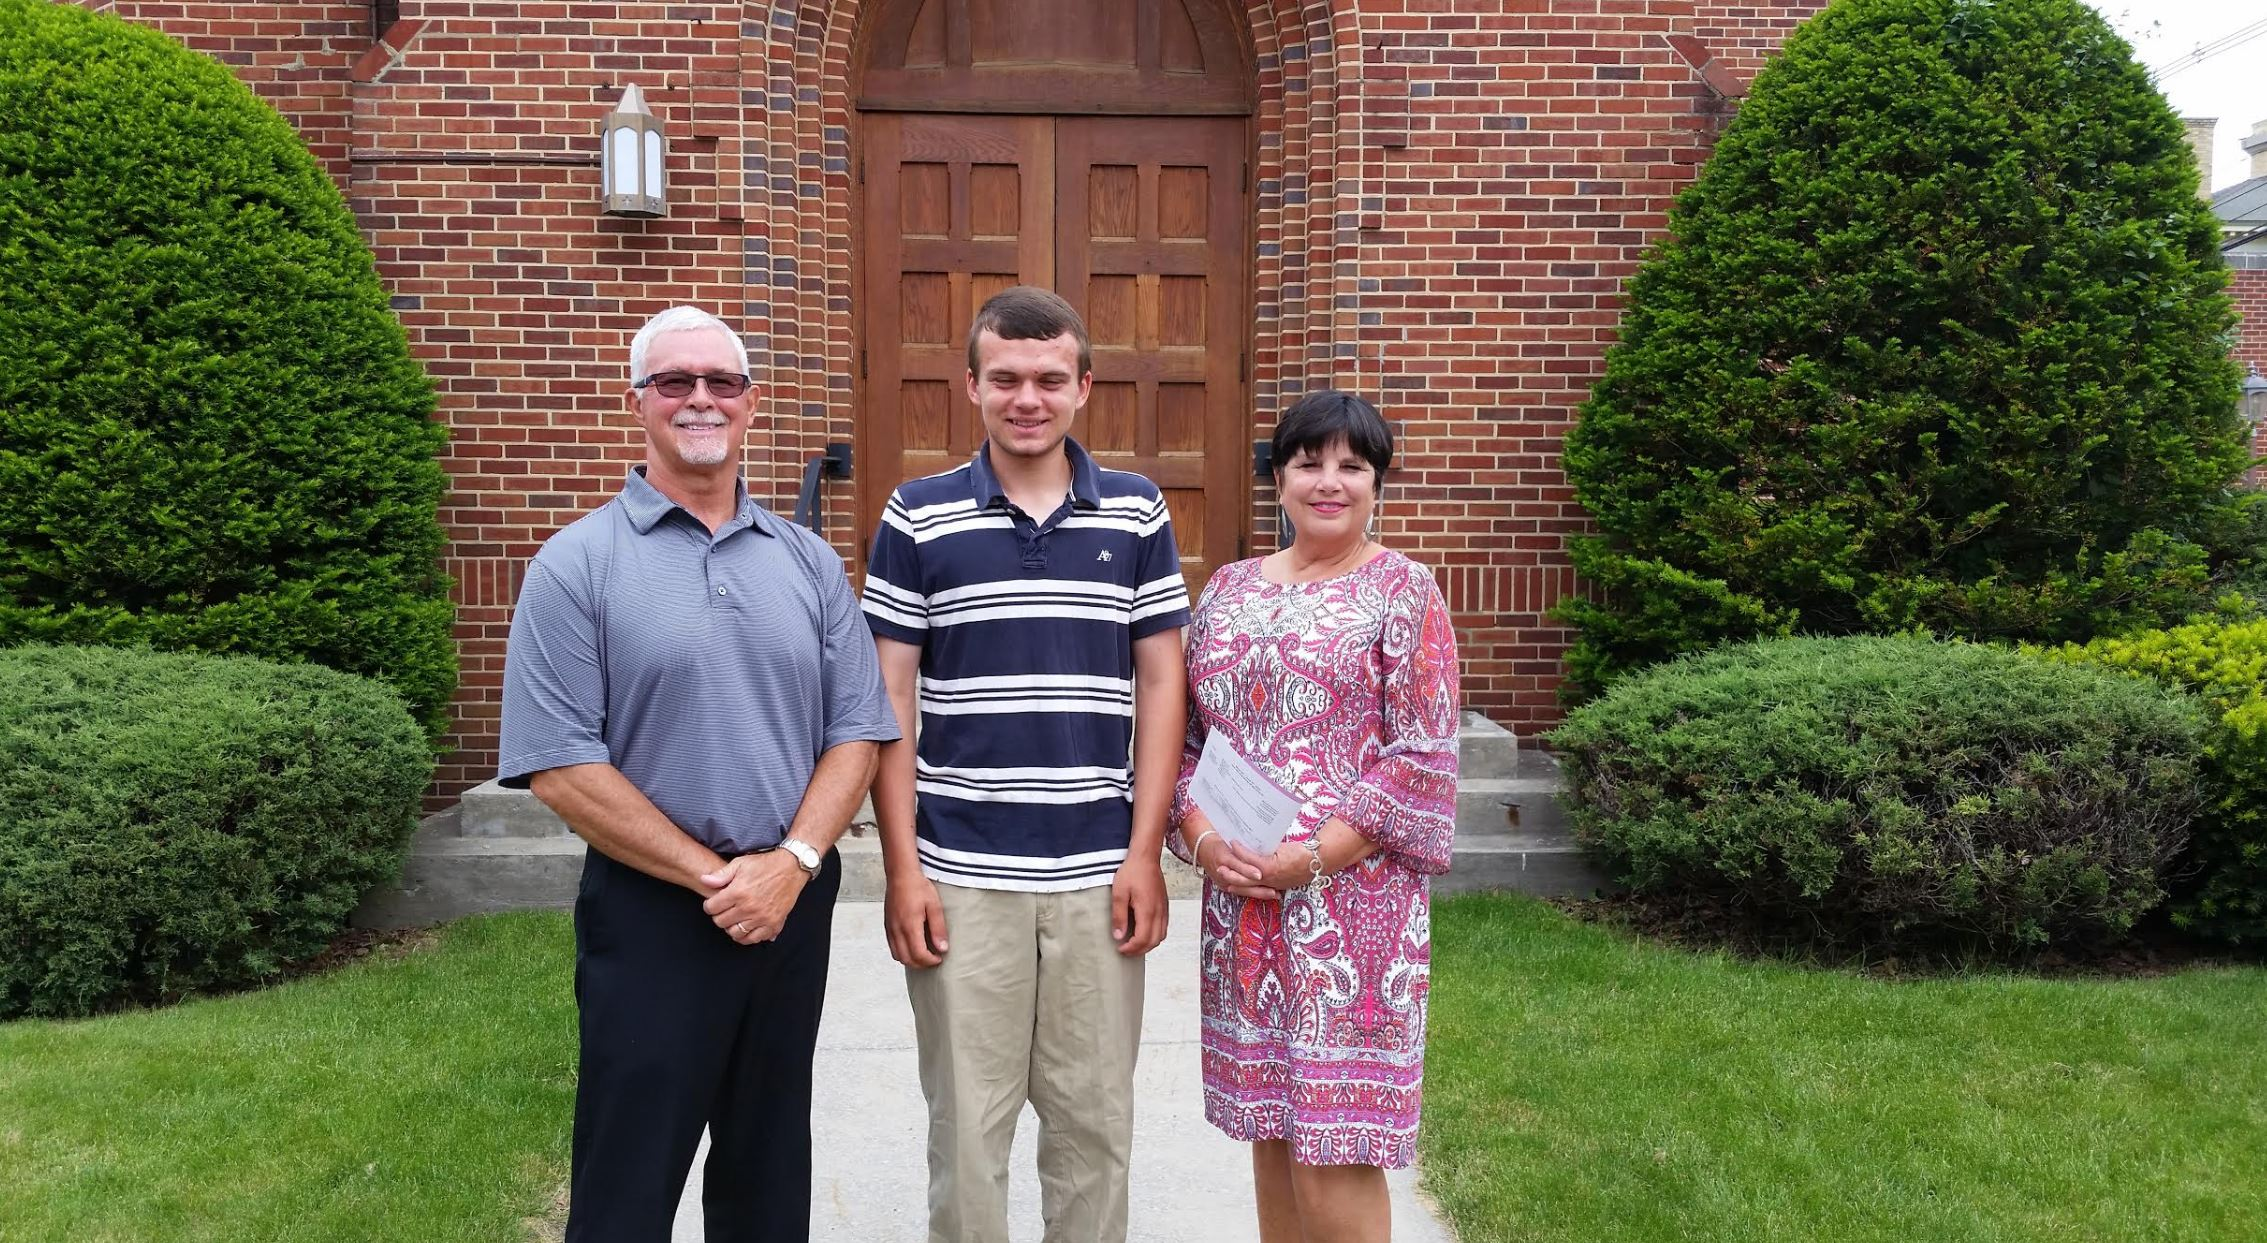 Joshua Brenneman – Andrew S. Woods Memorial Scholarship Foundation presented a check for his mission trip to Guatemala with the Cherry Glade Mennonite Church